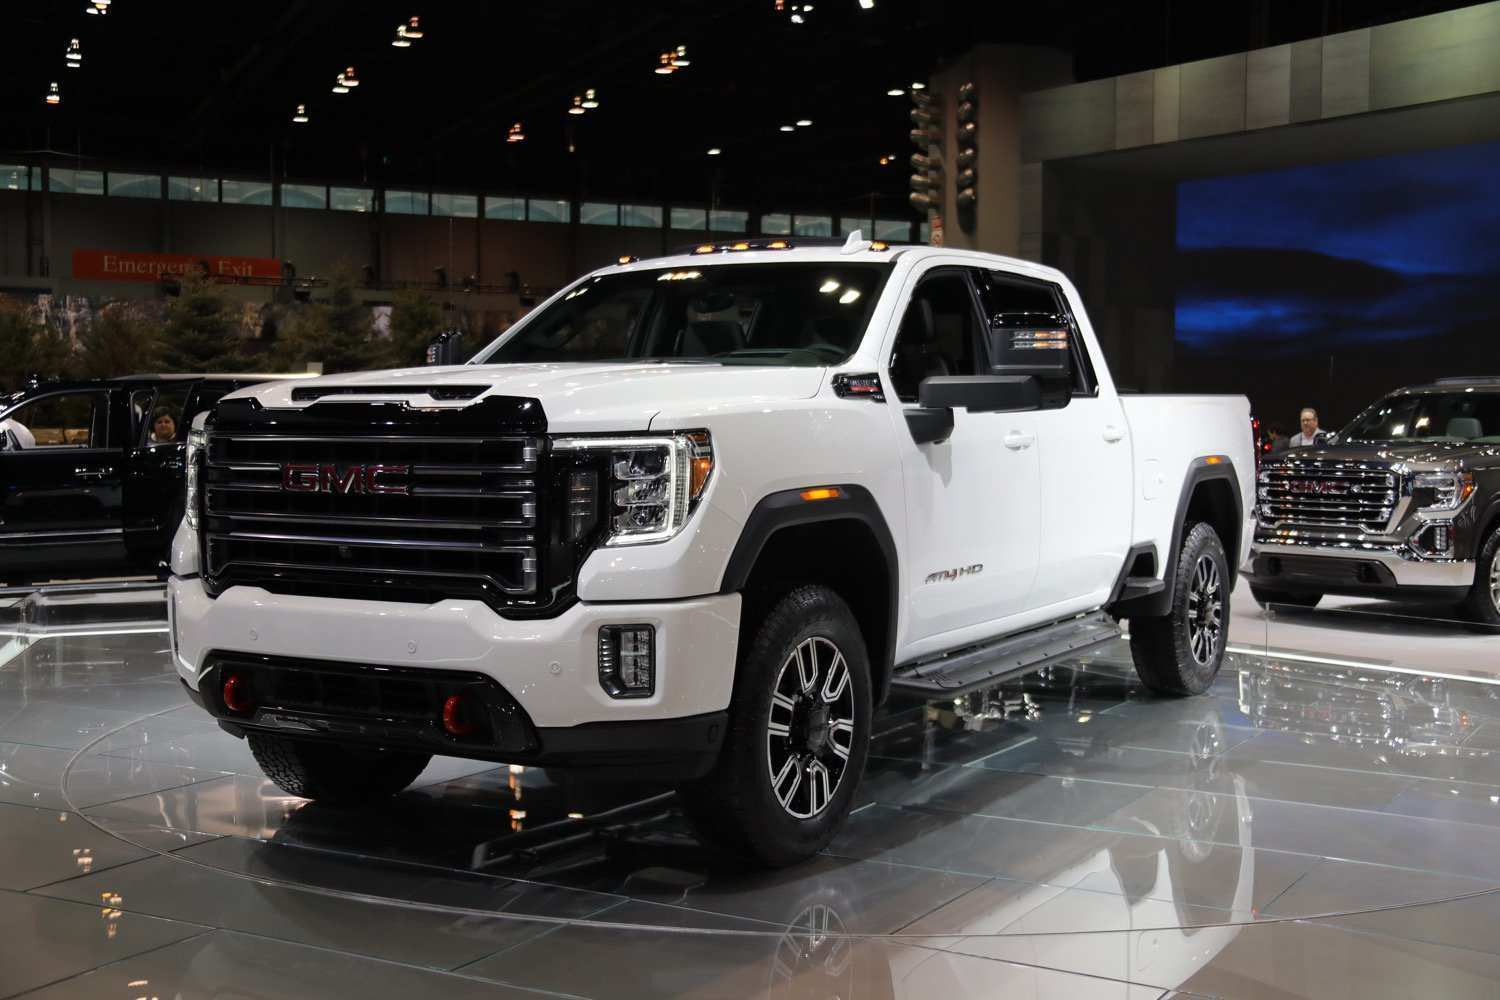 97 The Best 2020 Gmc Sierra Hd Denali Photos